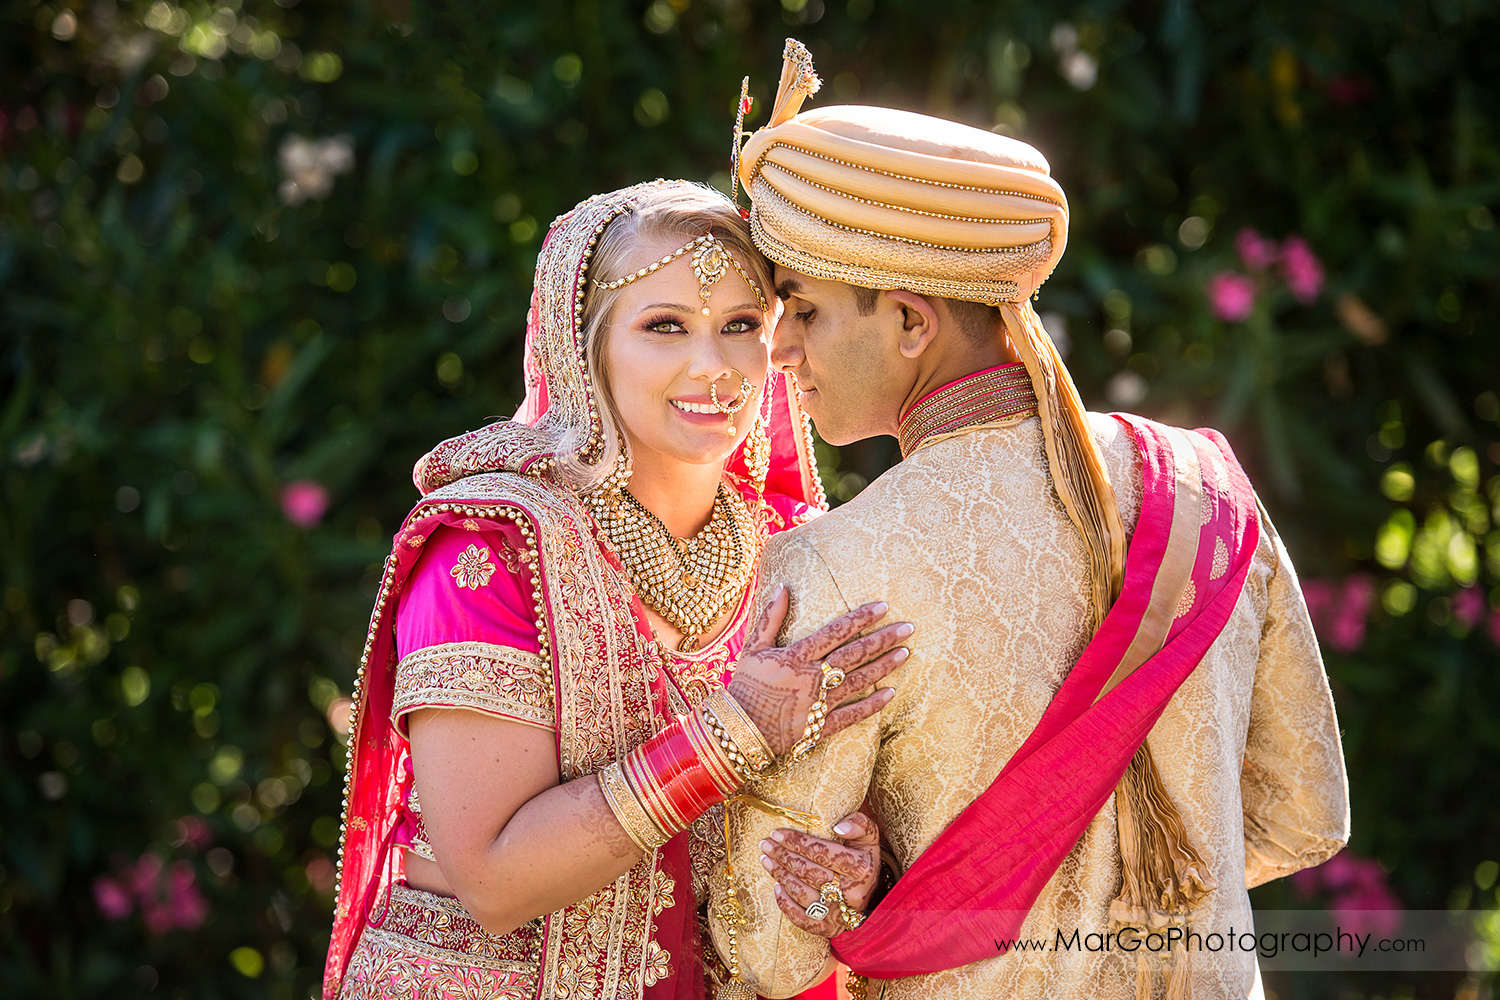 Indian bride and groom in pink and golden outfits on the wall of white and pink flowers at Elliston Vineyards in Sunol